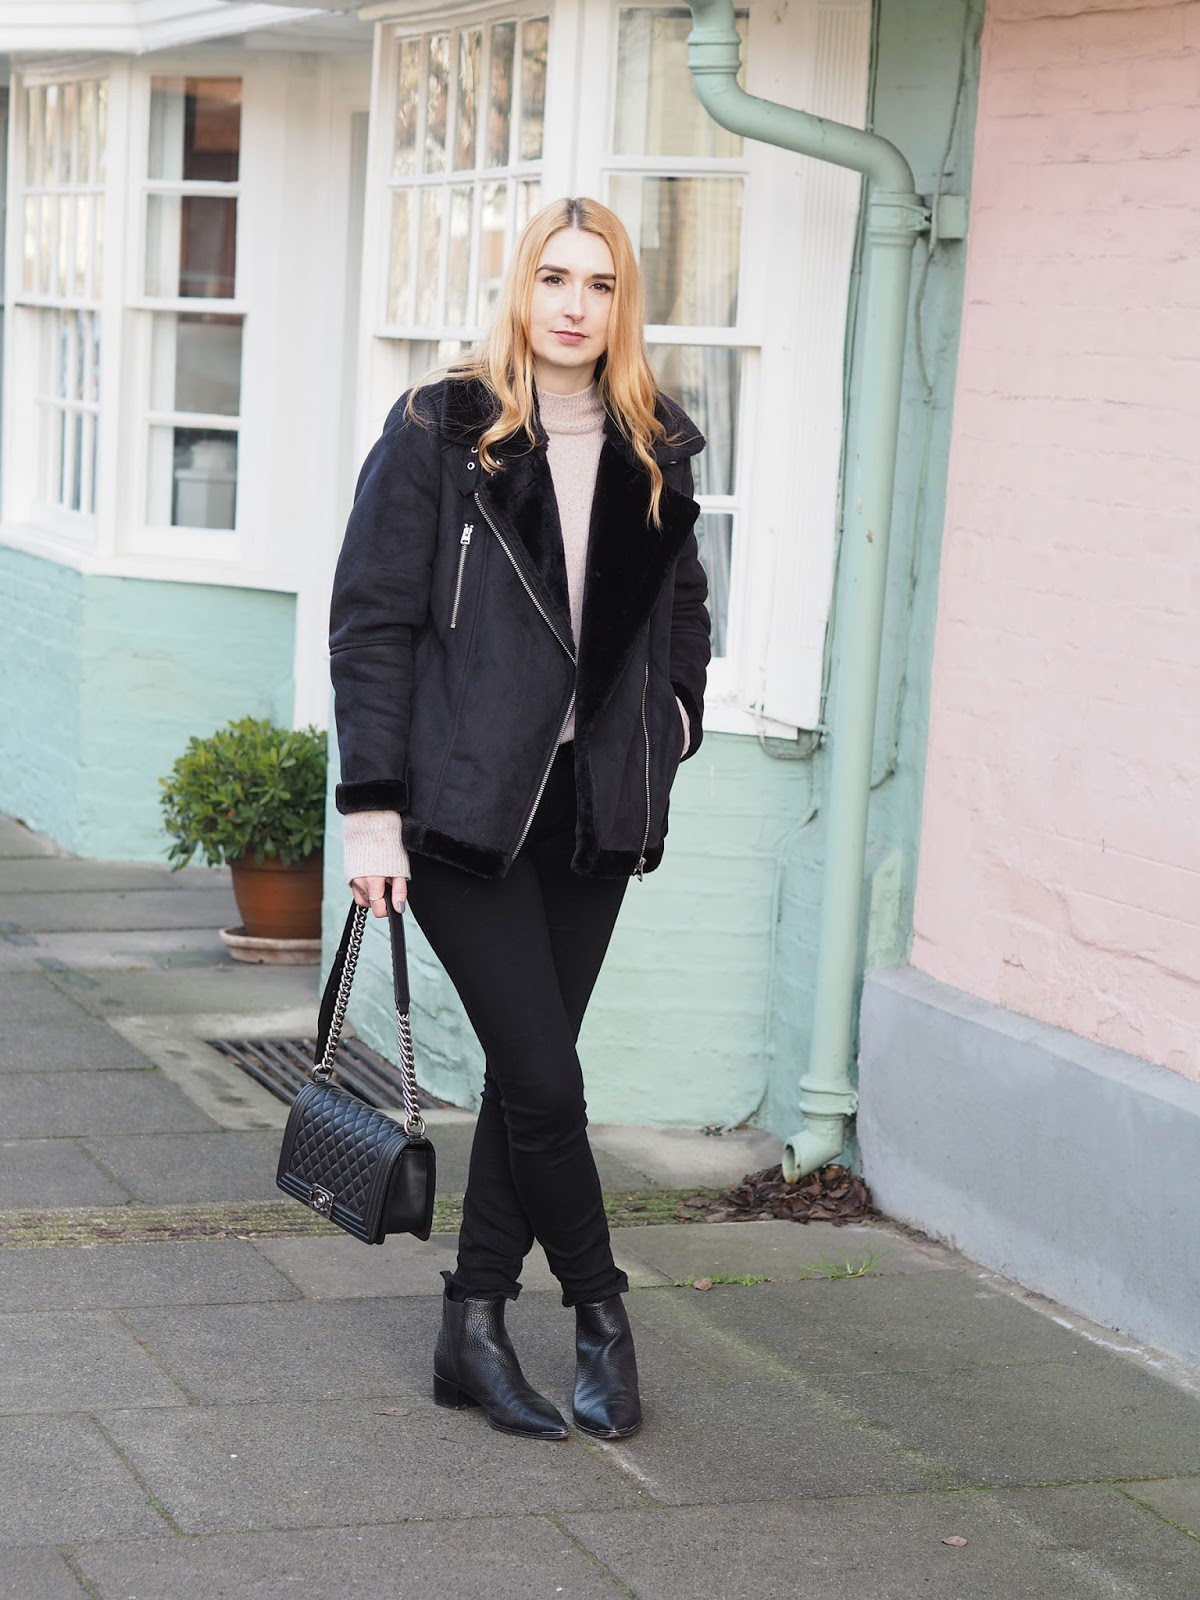 The Topshop Faux Shearling Aviator Jacket